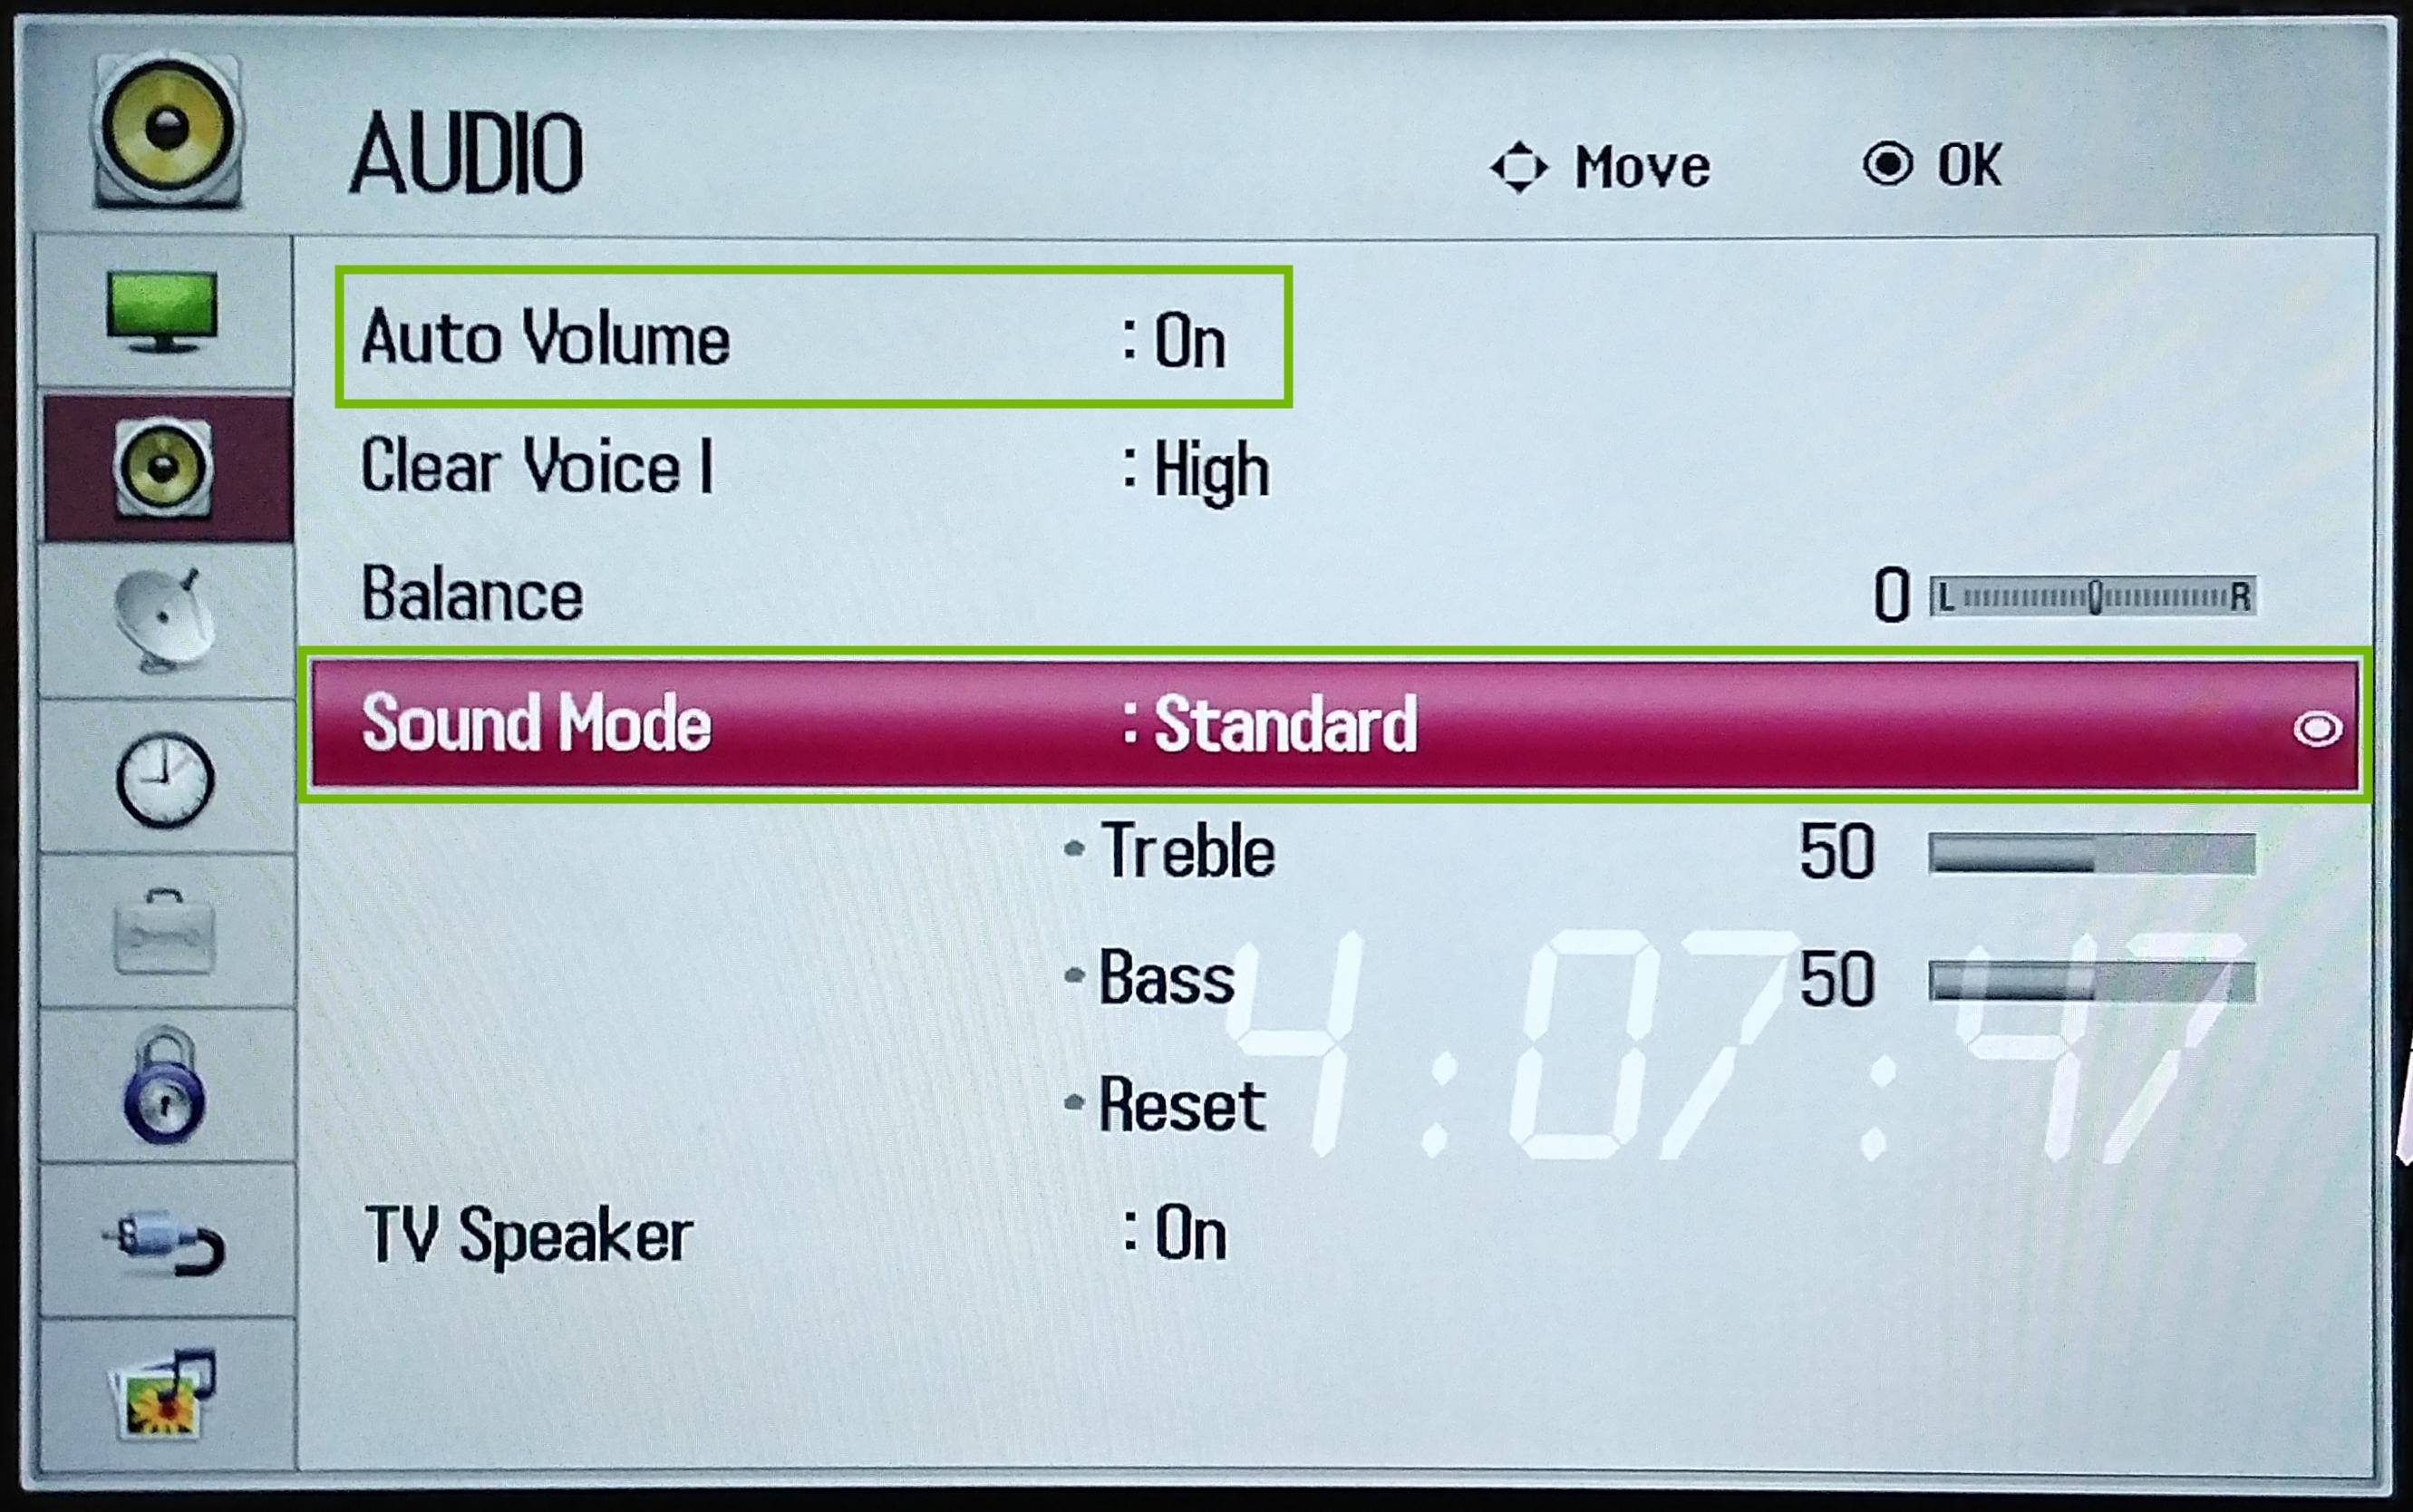 Audio Menu with Auto Volume and Sound Mode highlighted.